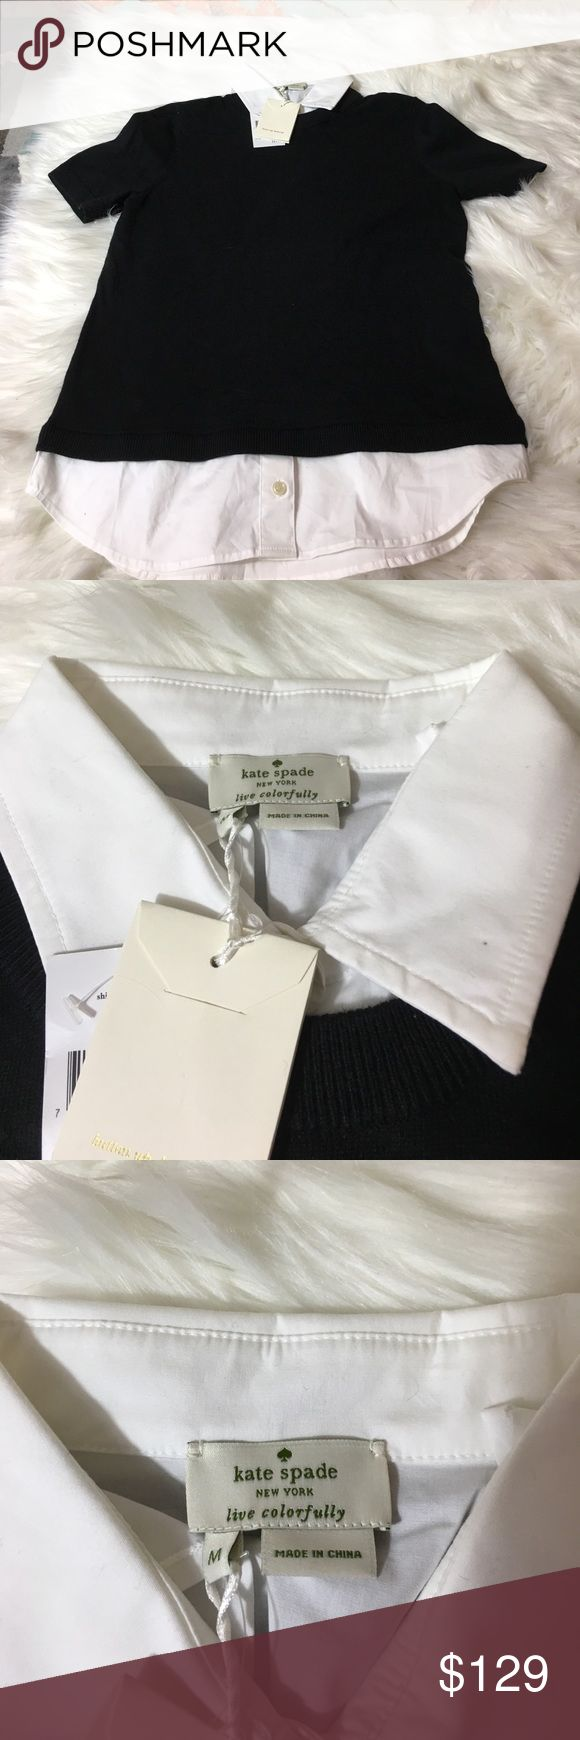 """Kate Spade Shirttail Sweater Brand new Kate Spade Blaze A Trail Shirttail Sweater in Size Medium. A crisp collar and shirttails peek out from under this short-sleeved sweater, for a bulk-free layered look. just add leggings, wide-cut pants or a full midi skirt and you are pretty much ready for work.  58% cotton 22% viscose 20% polyamide / trim: 97% cotton 3% elastaneshort sleevescollar standshirt tail hem adds 1"""" in the back. Measurements: 26"""" long from highest shoulder point. kate spade…"""